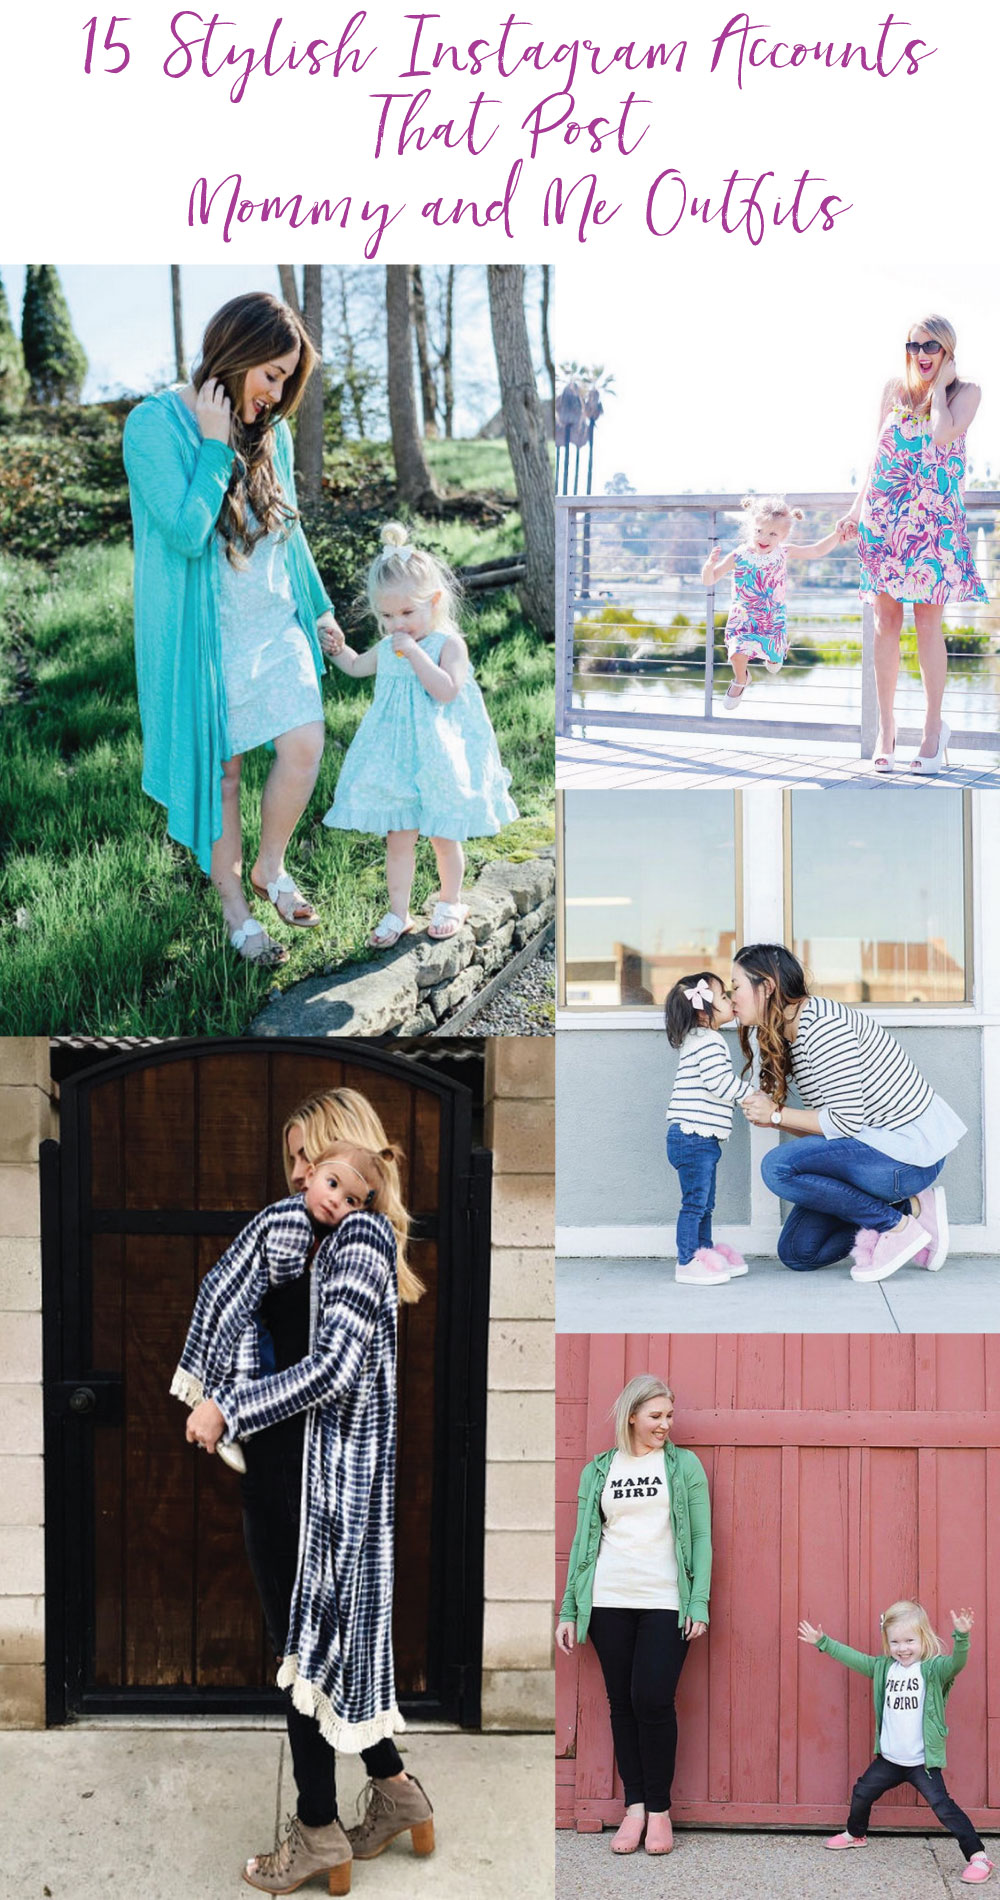 15 Stylish Instagram Accounts That Post Mommy and Me Outfits by fashion blogger Sandy A La Mode